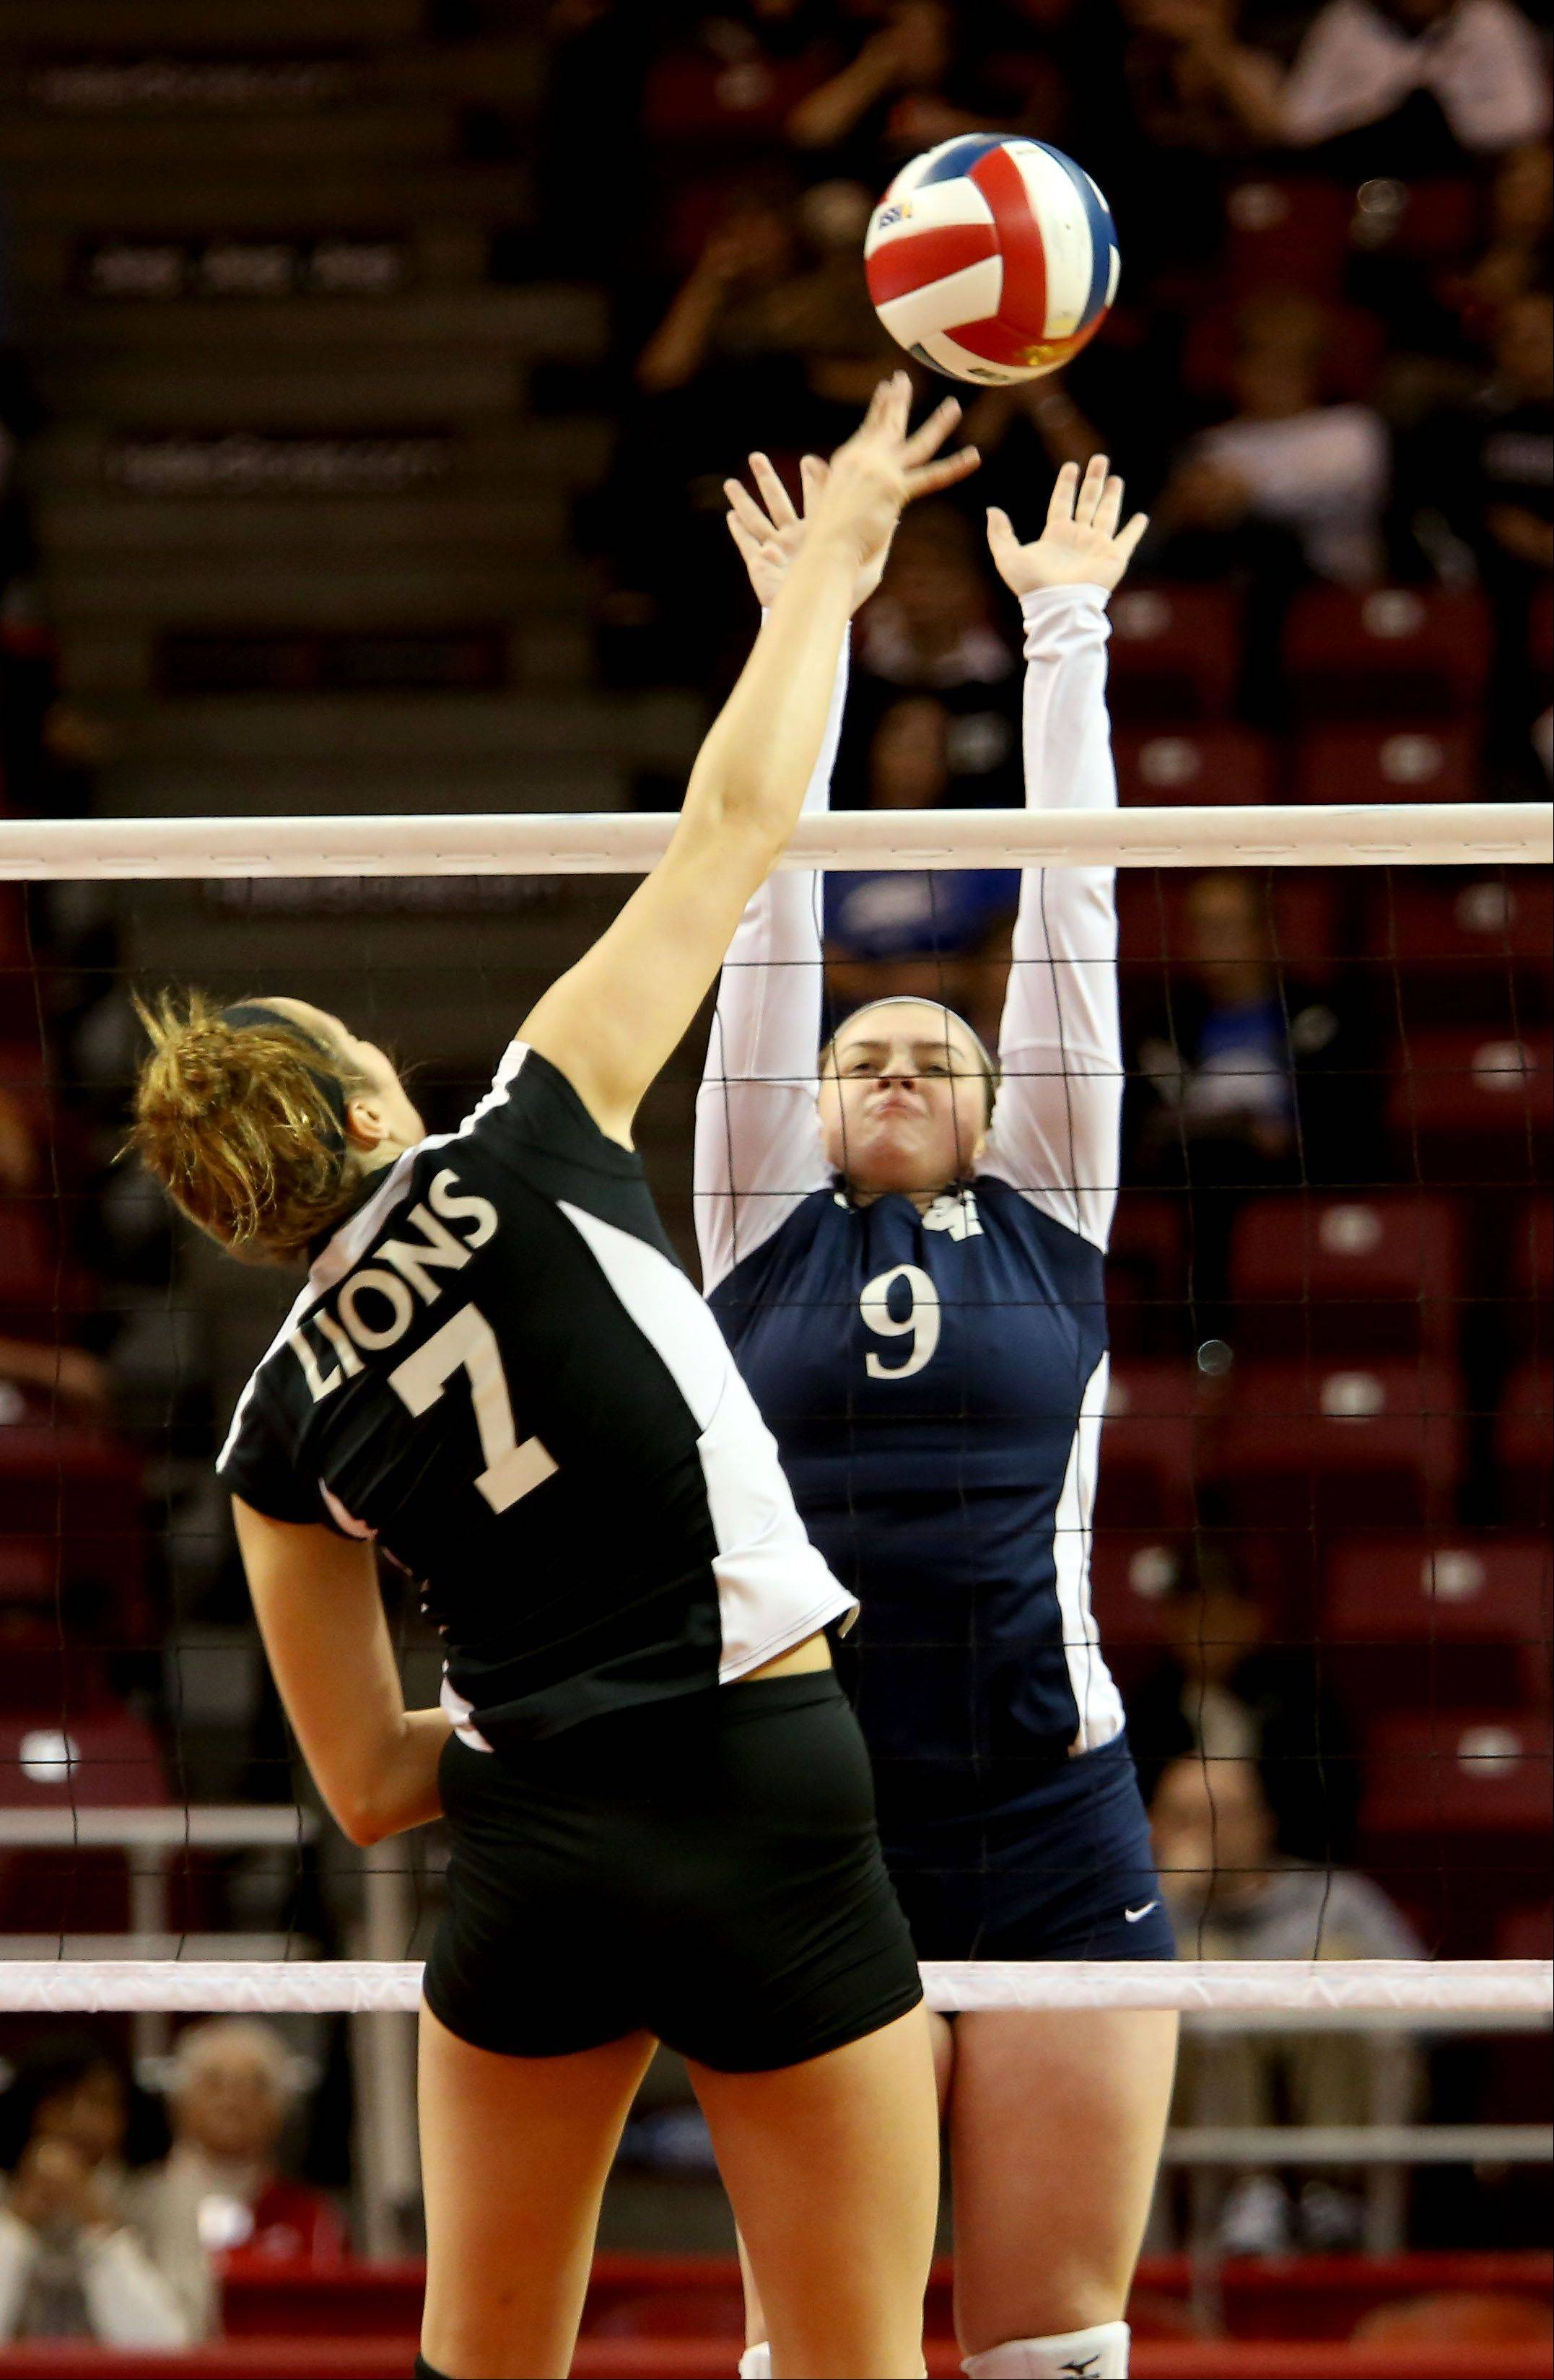 Frannie Cervone of IC Catholic goes up to block a shot by Riley Messman of Edwards County in the Class 2A championship girls volleyball match on Saturday in Normal.